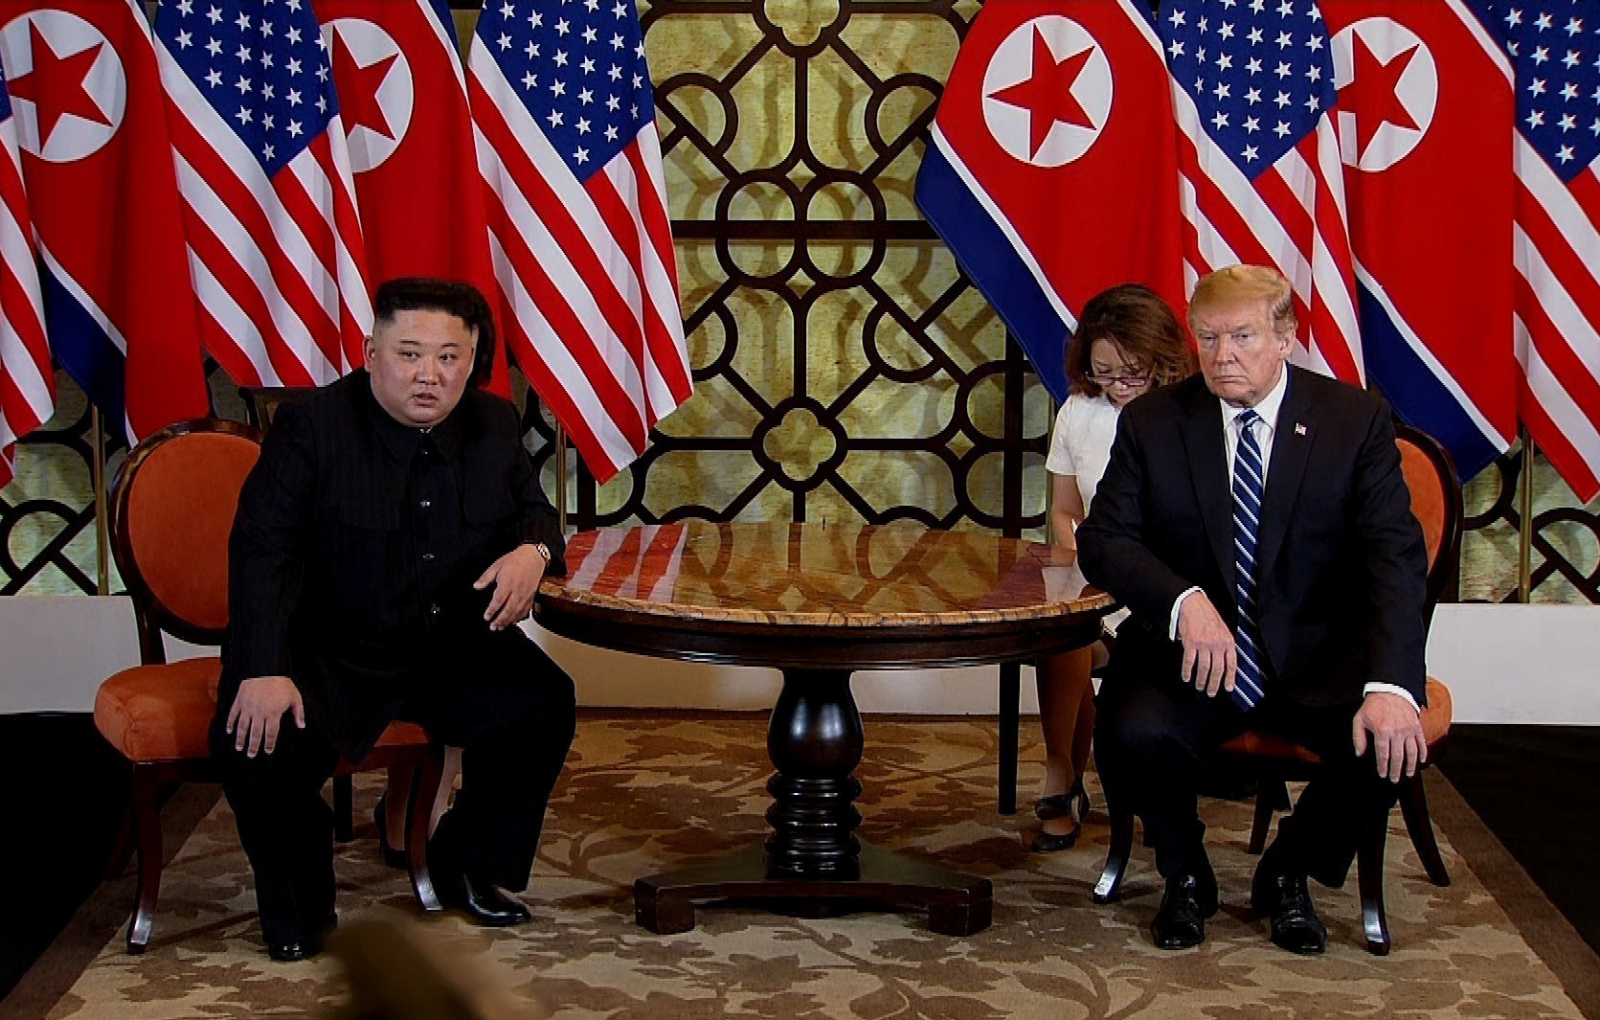 Trump and Kim at the Hanoi Summit